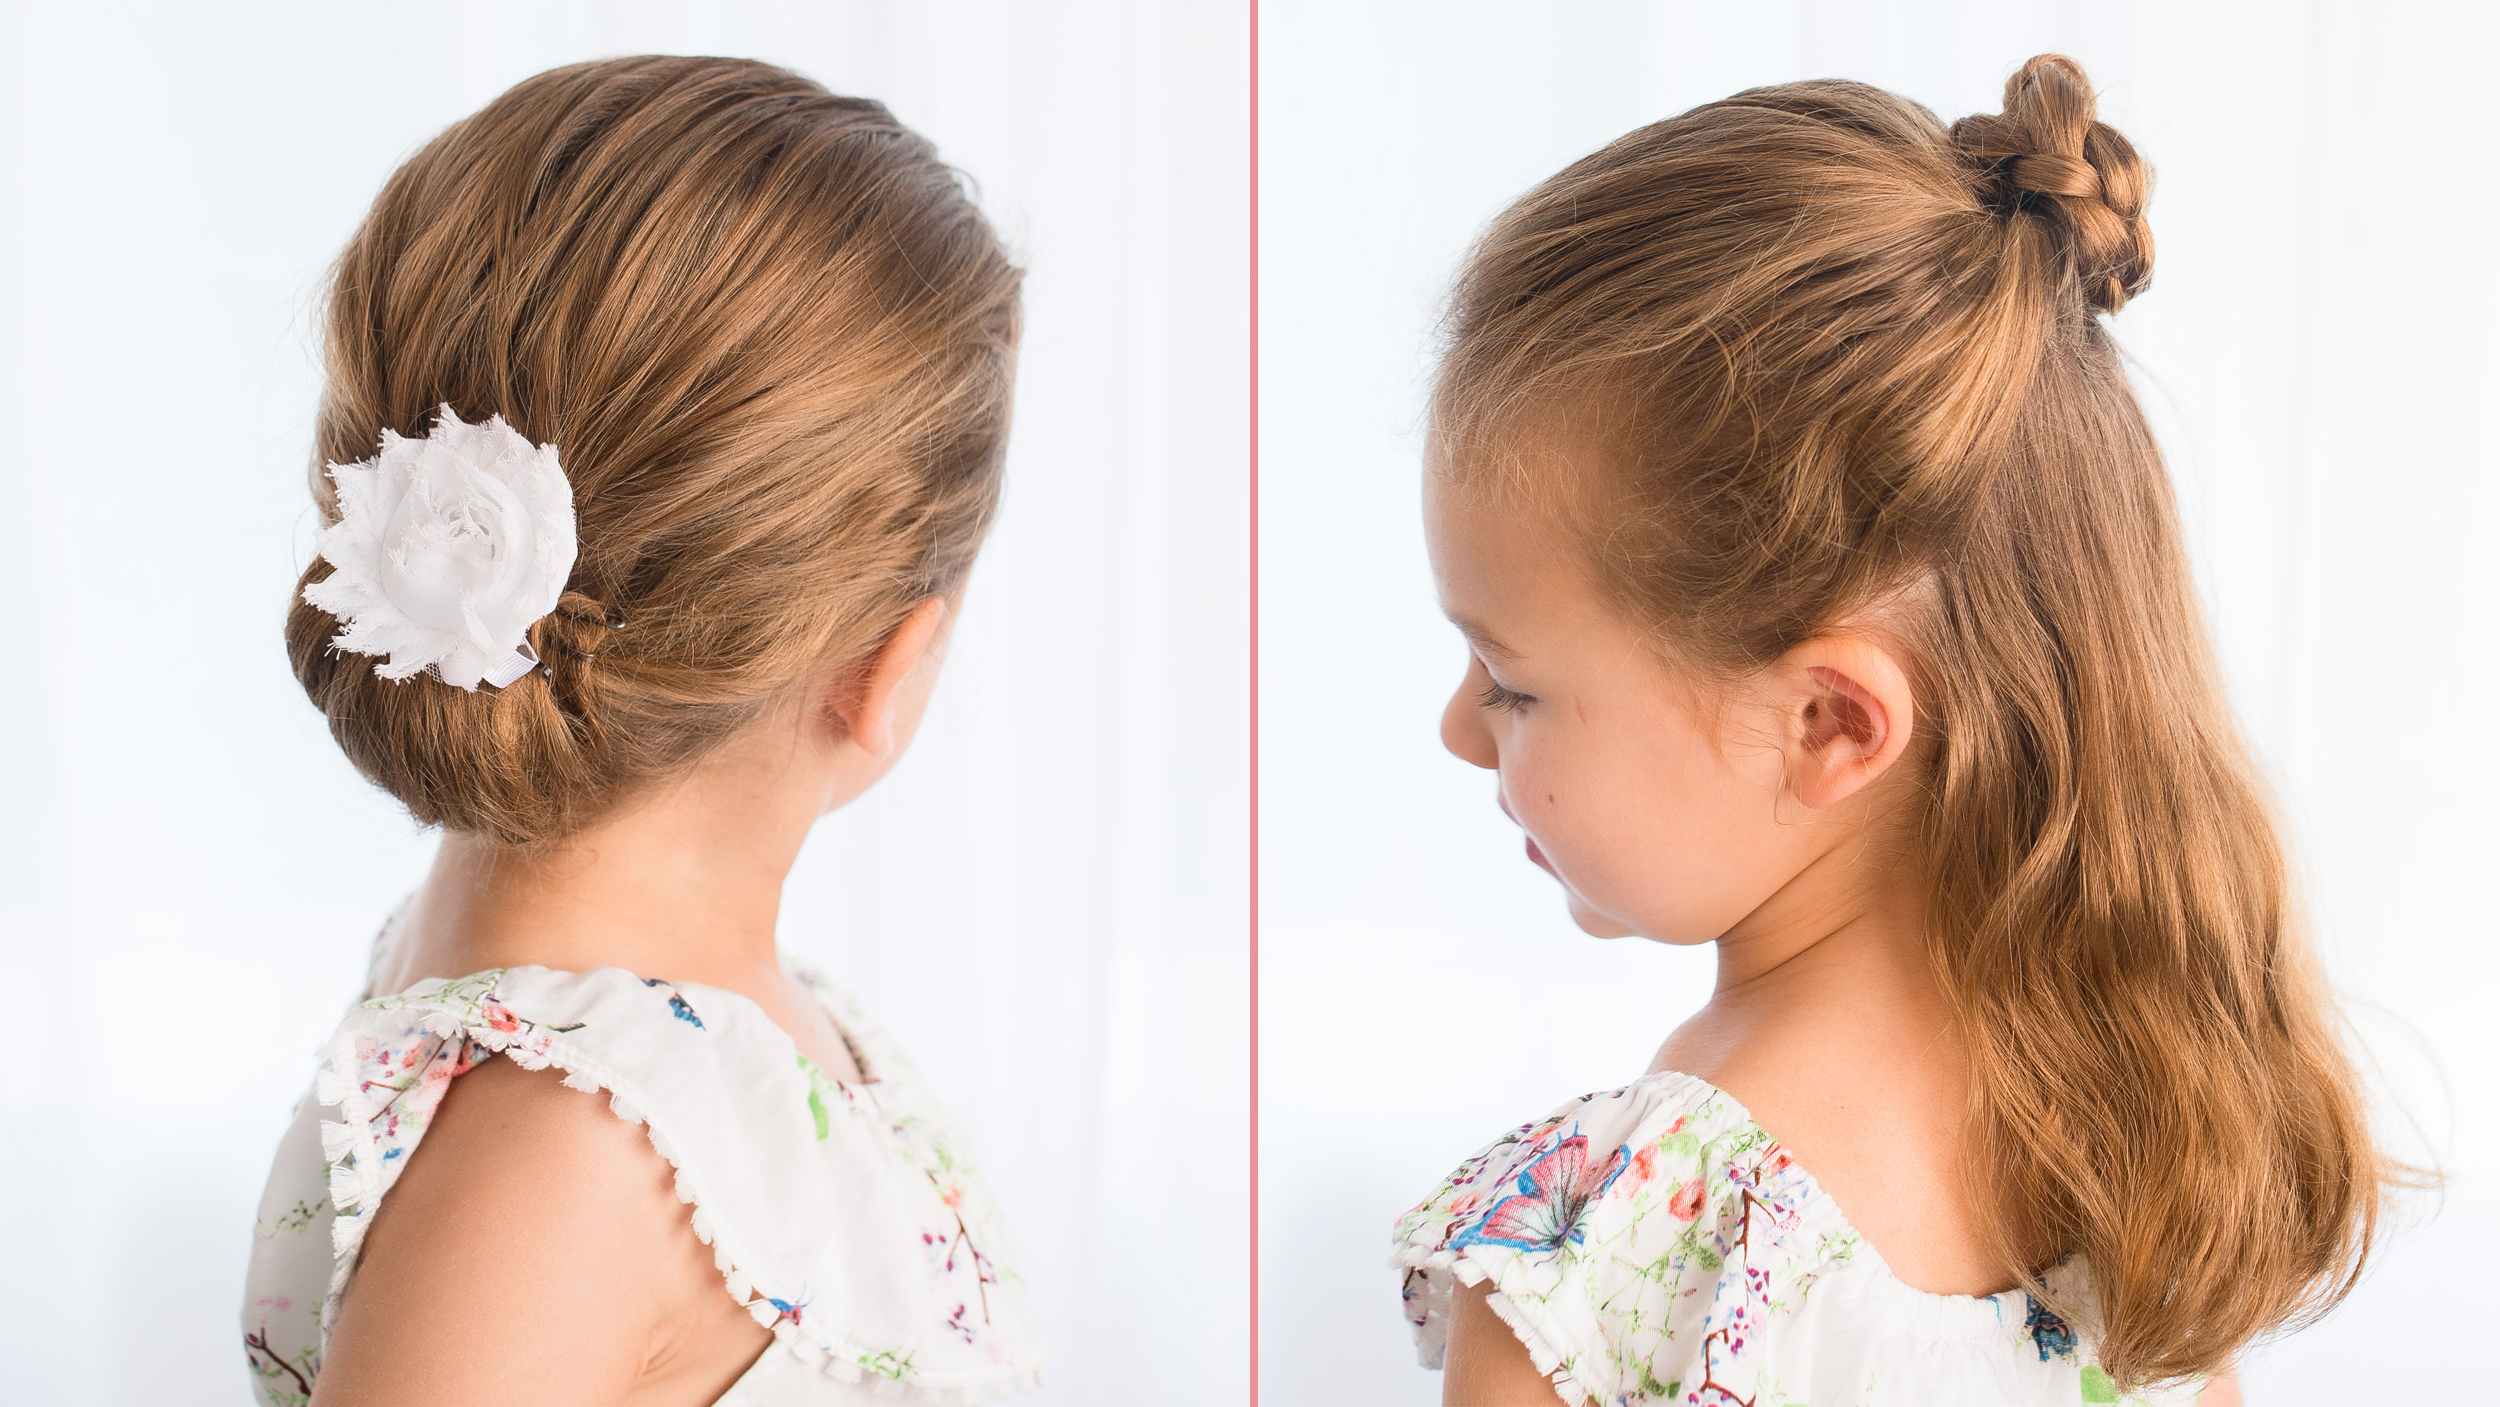 Easy Hair Styles For Kids Easy Hairstyles For Girls That You Can Create In Minutes